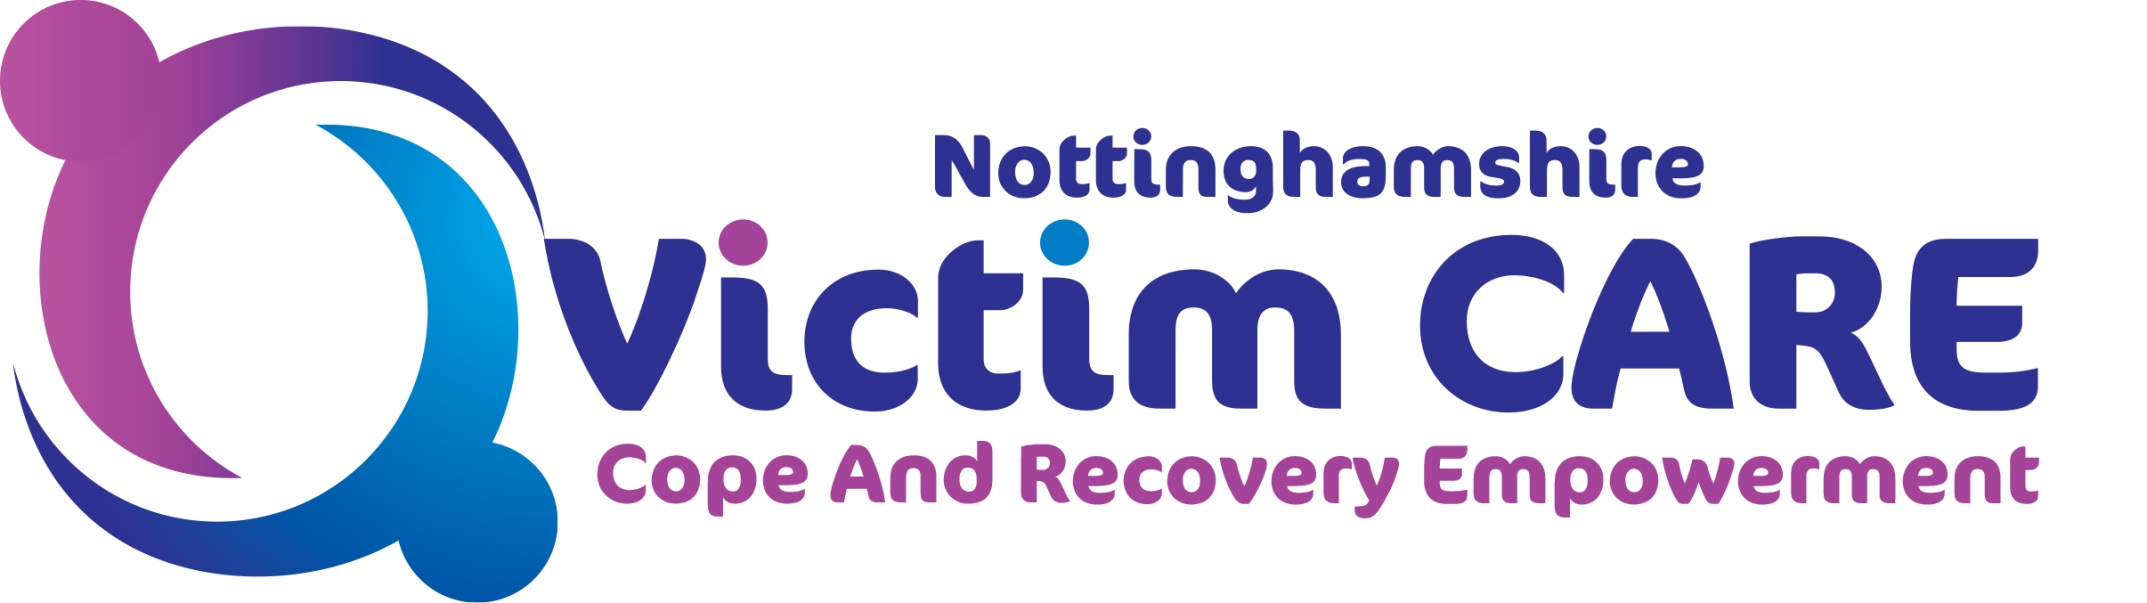 Nottinghamshire Victim Care logo: cope and recovery empowerment